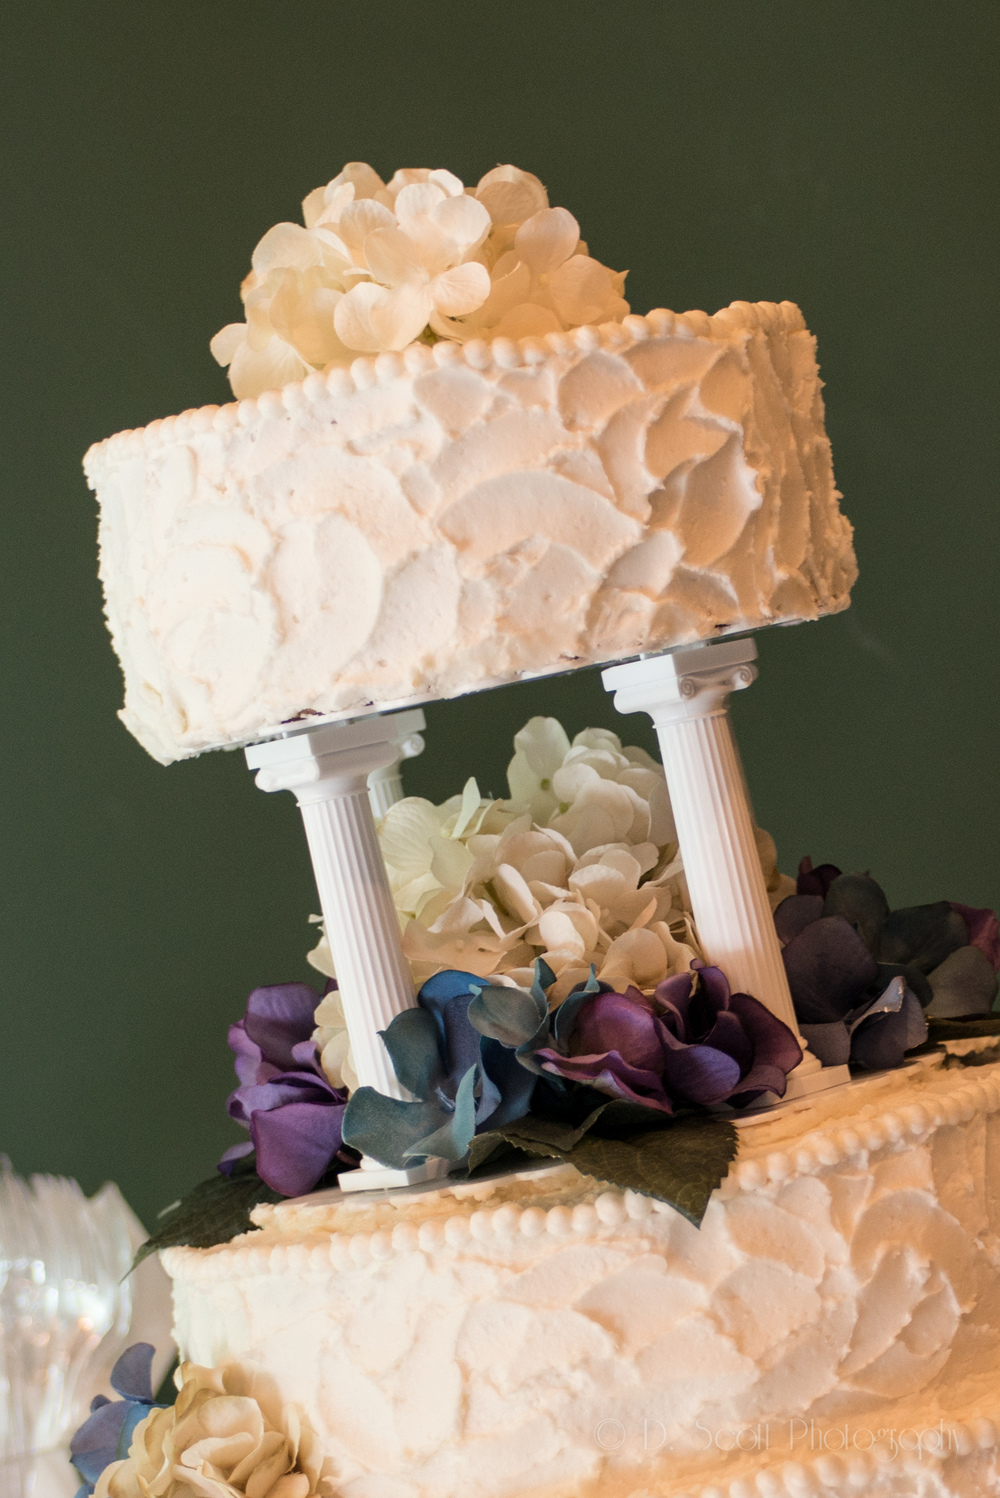 Tiered cakes with fresh flowers